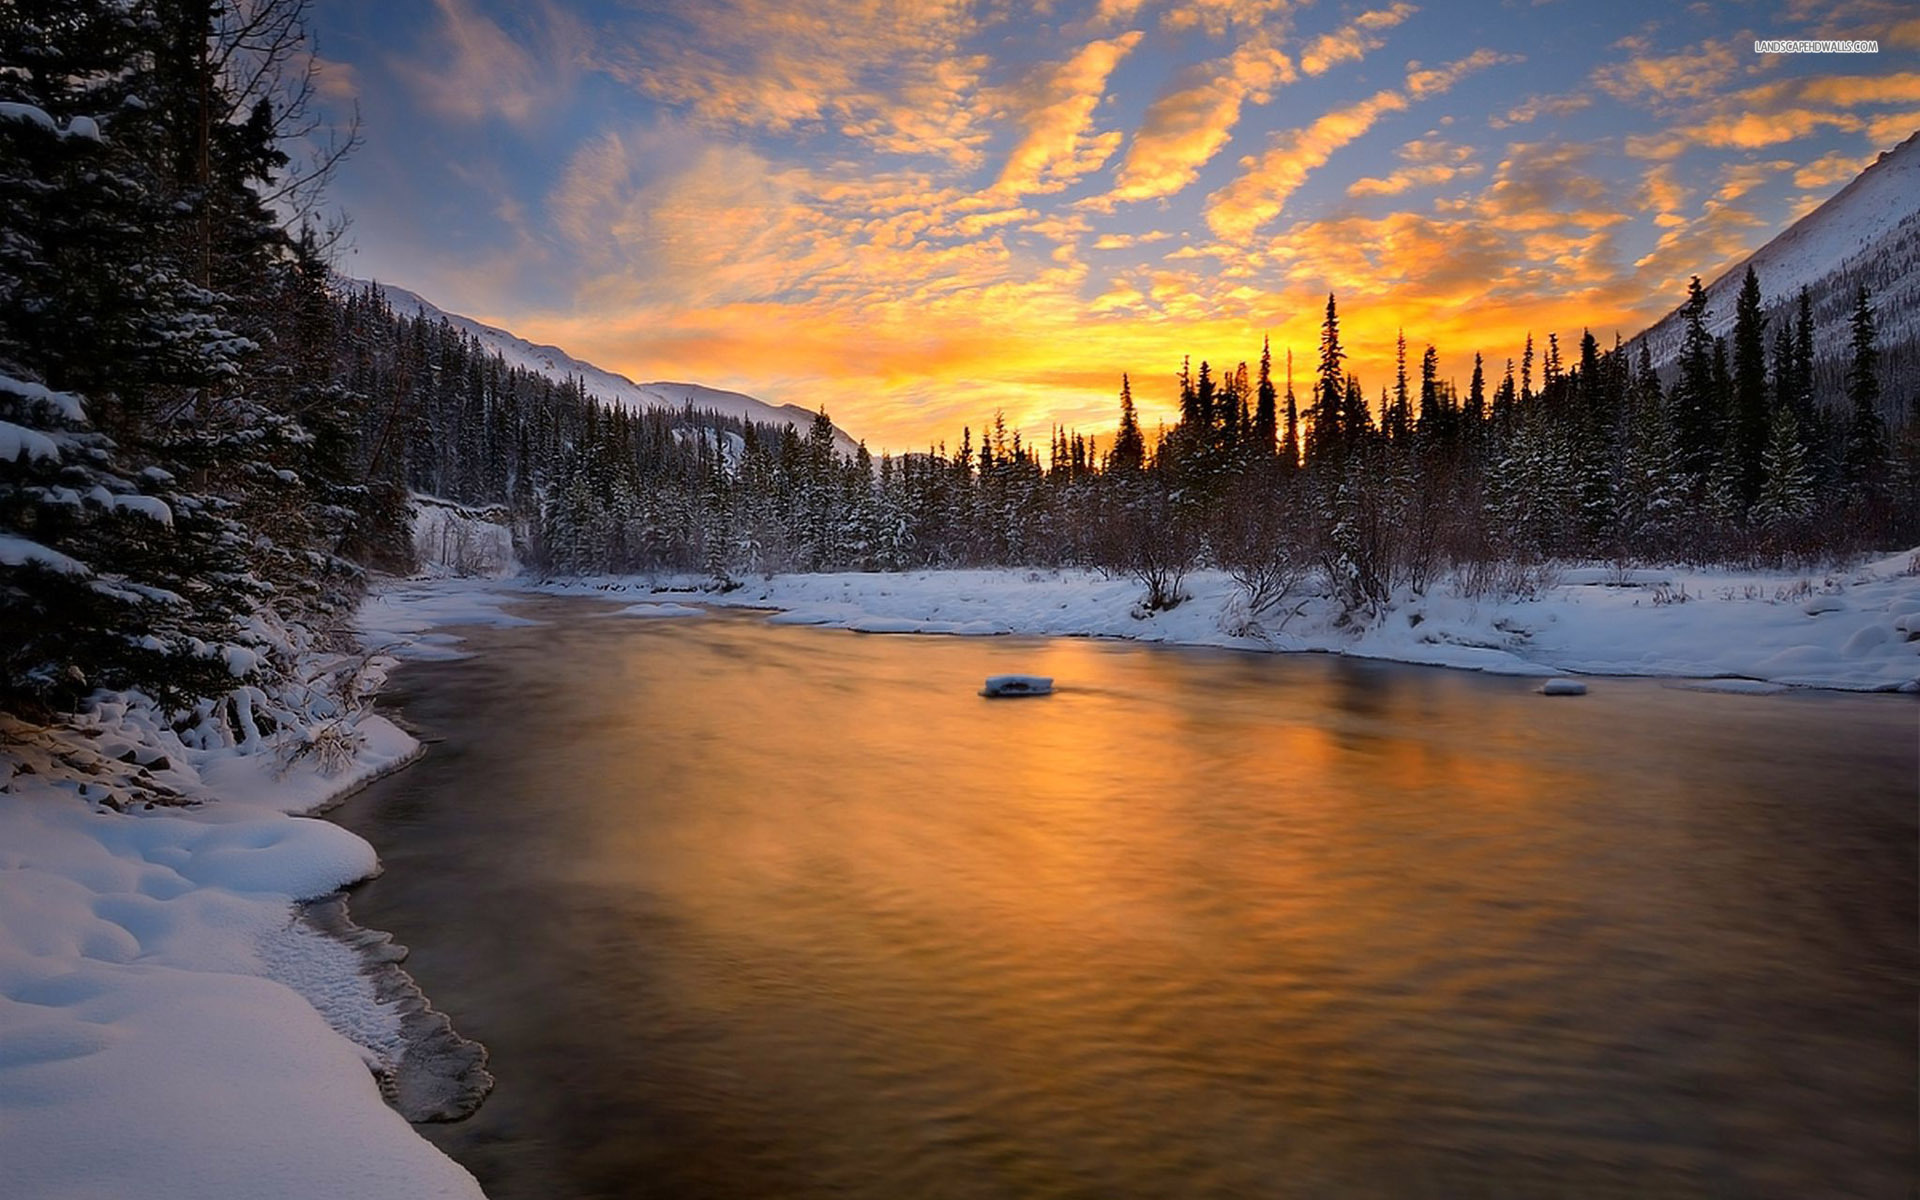 Calm River Sunset Forest Snowy wallpapers | Calm River ...